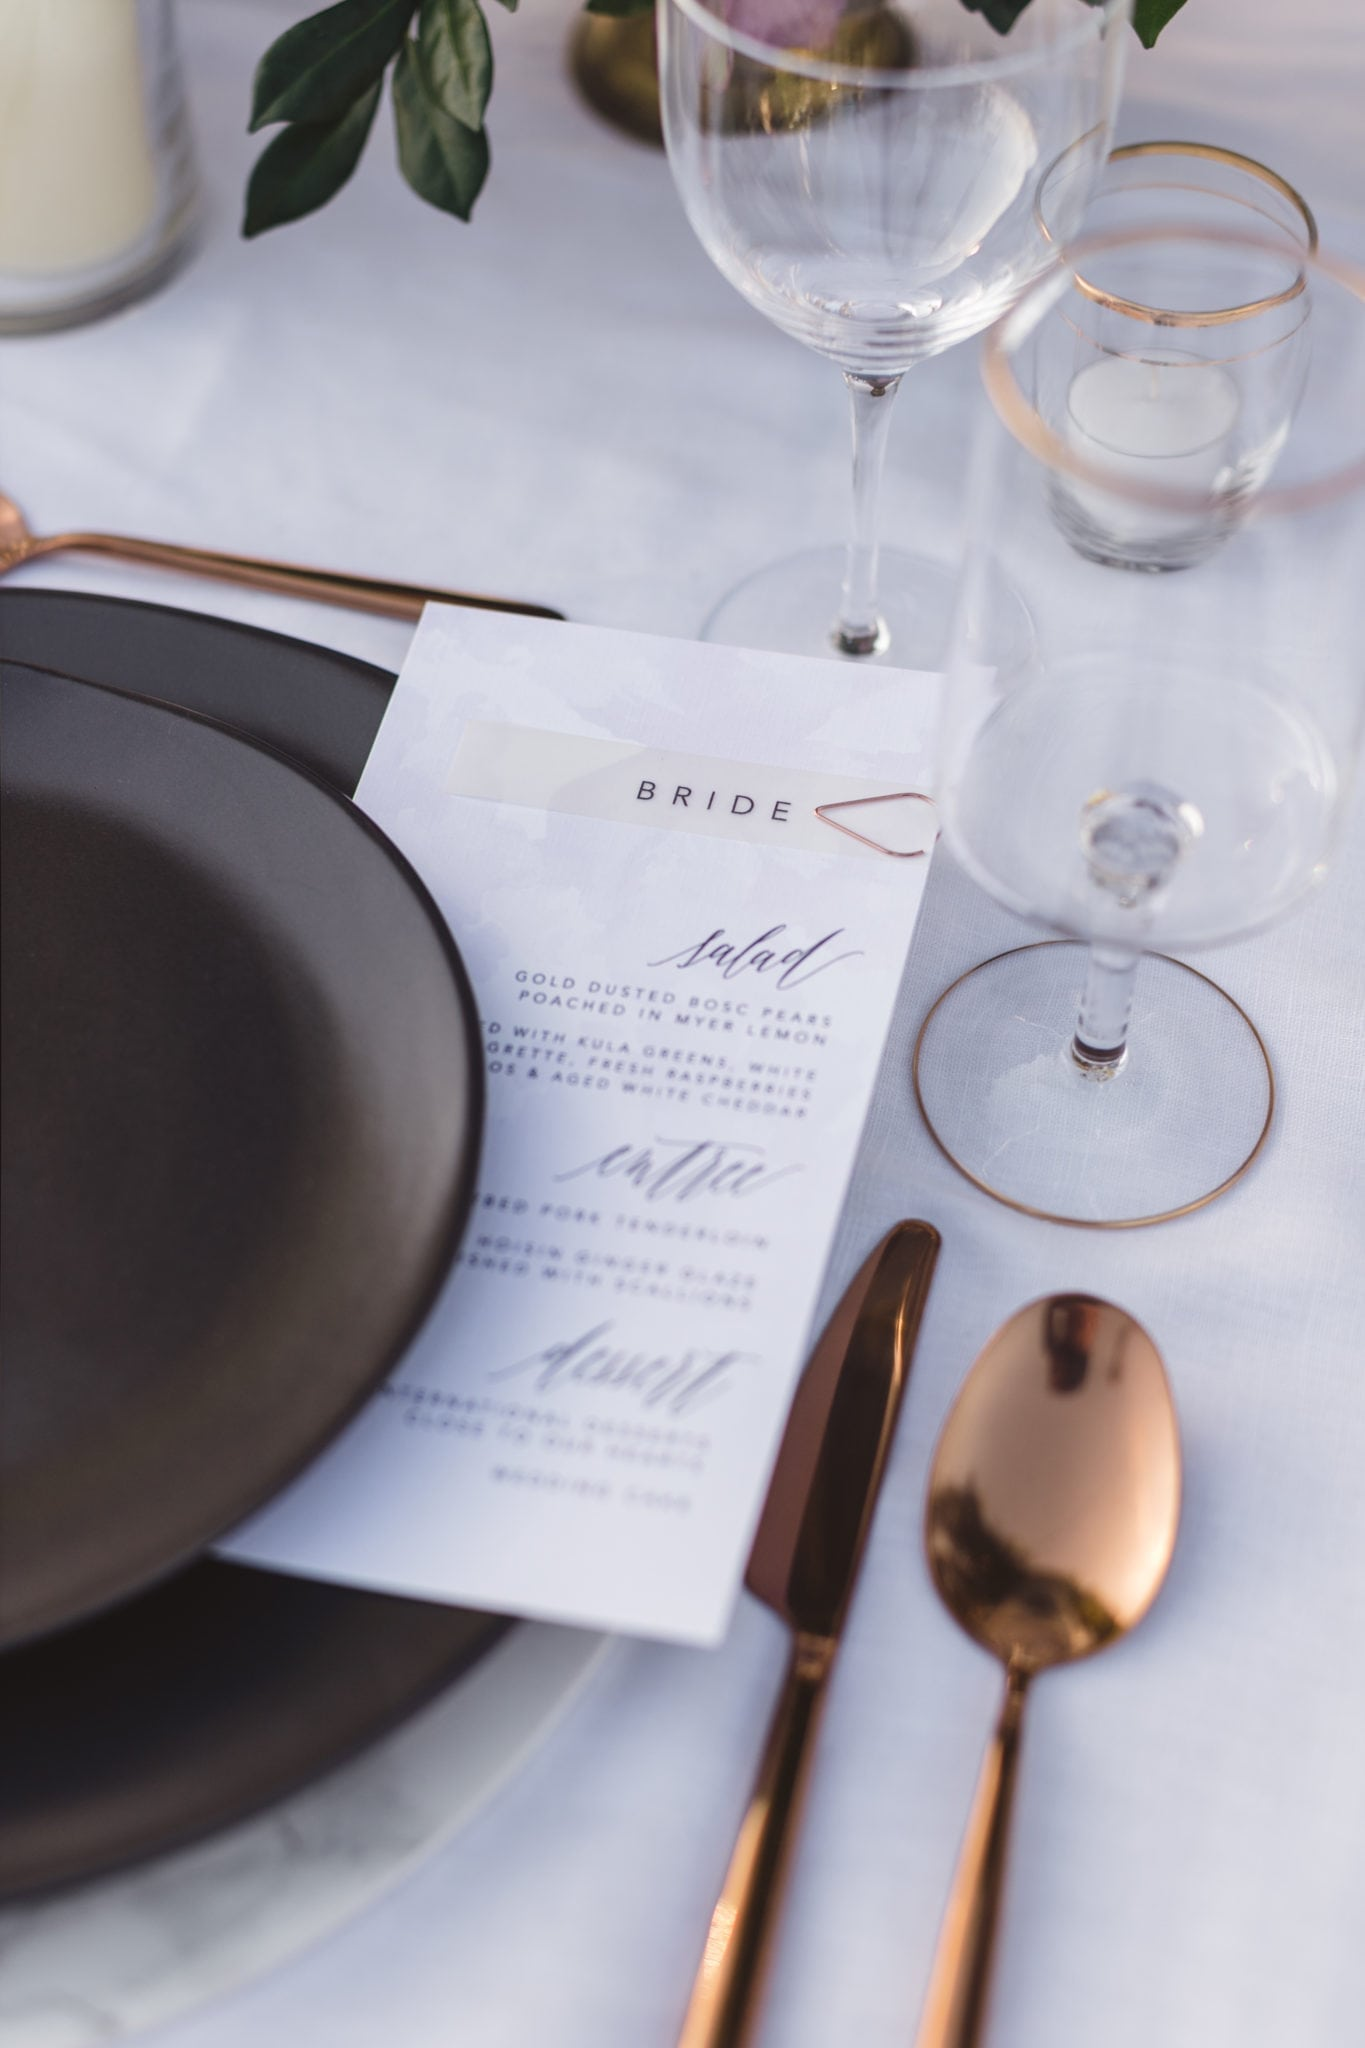 Elegant Tablescape with Black Dinnerware and Menu Card | Maui's Angels Wedding Blog | Weddings in Maui